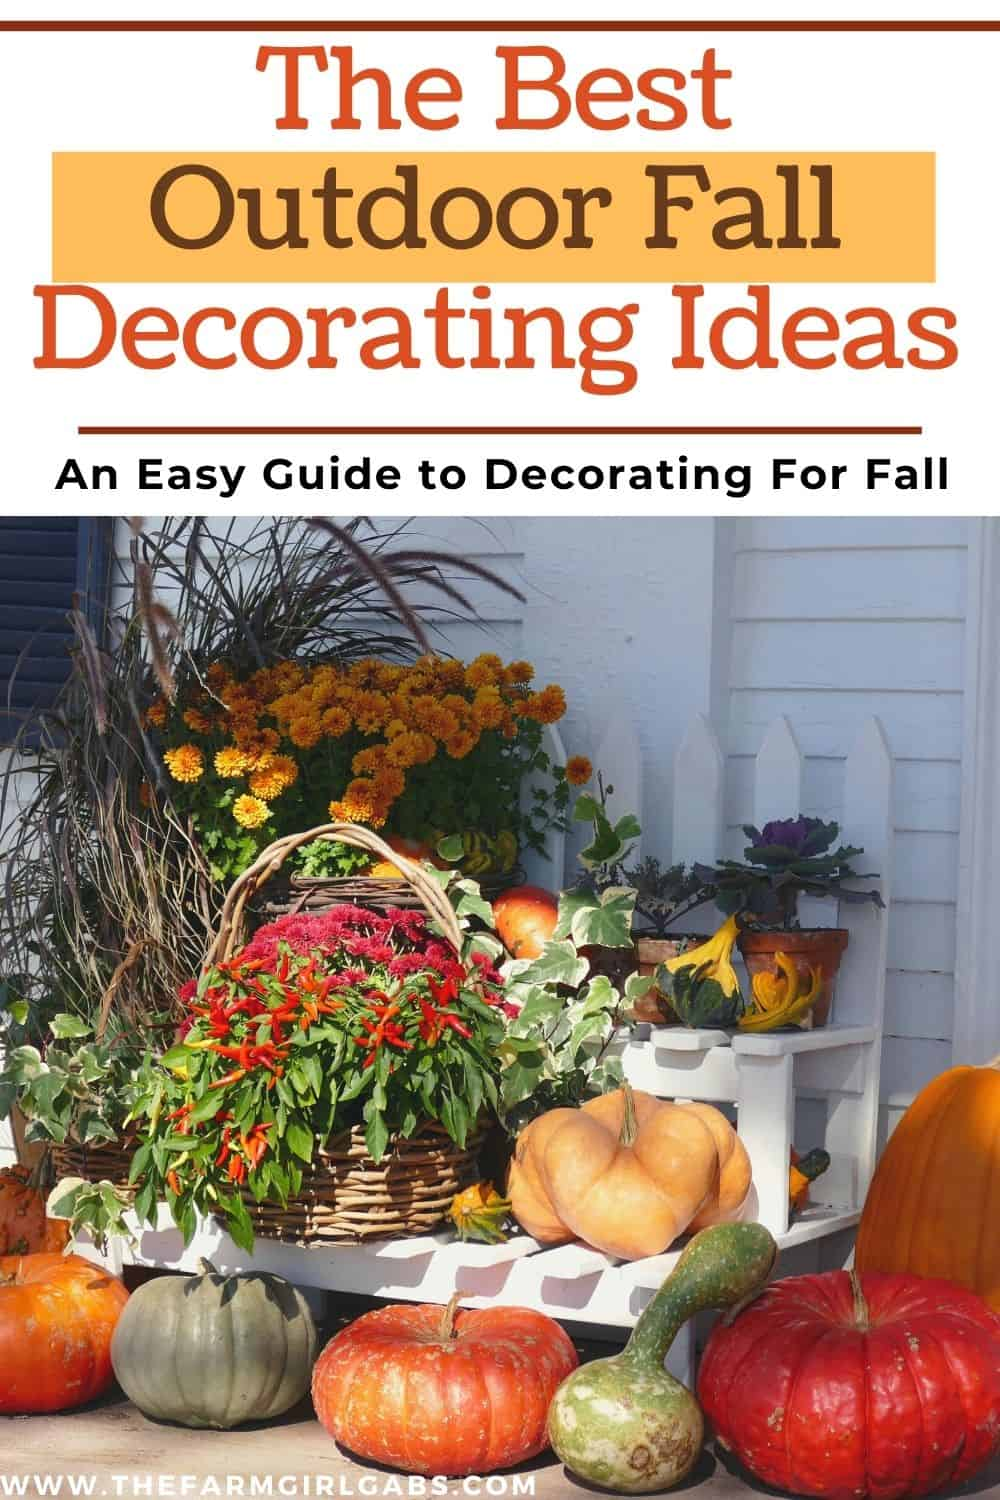 Make your home a show-stopper this fall with these Outdoor Fall Decorating Ideas! Fun ways to decorate your home this fall. These budget-friendly decorating tips will make your home look like a show stopper this fall.